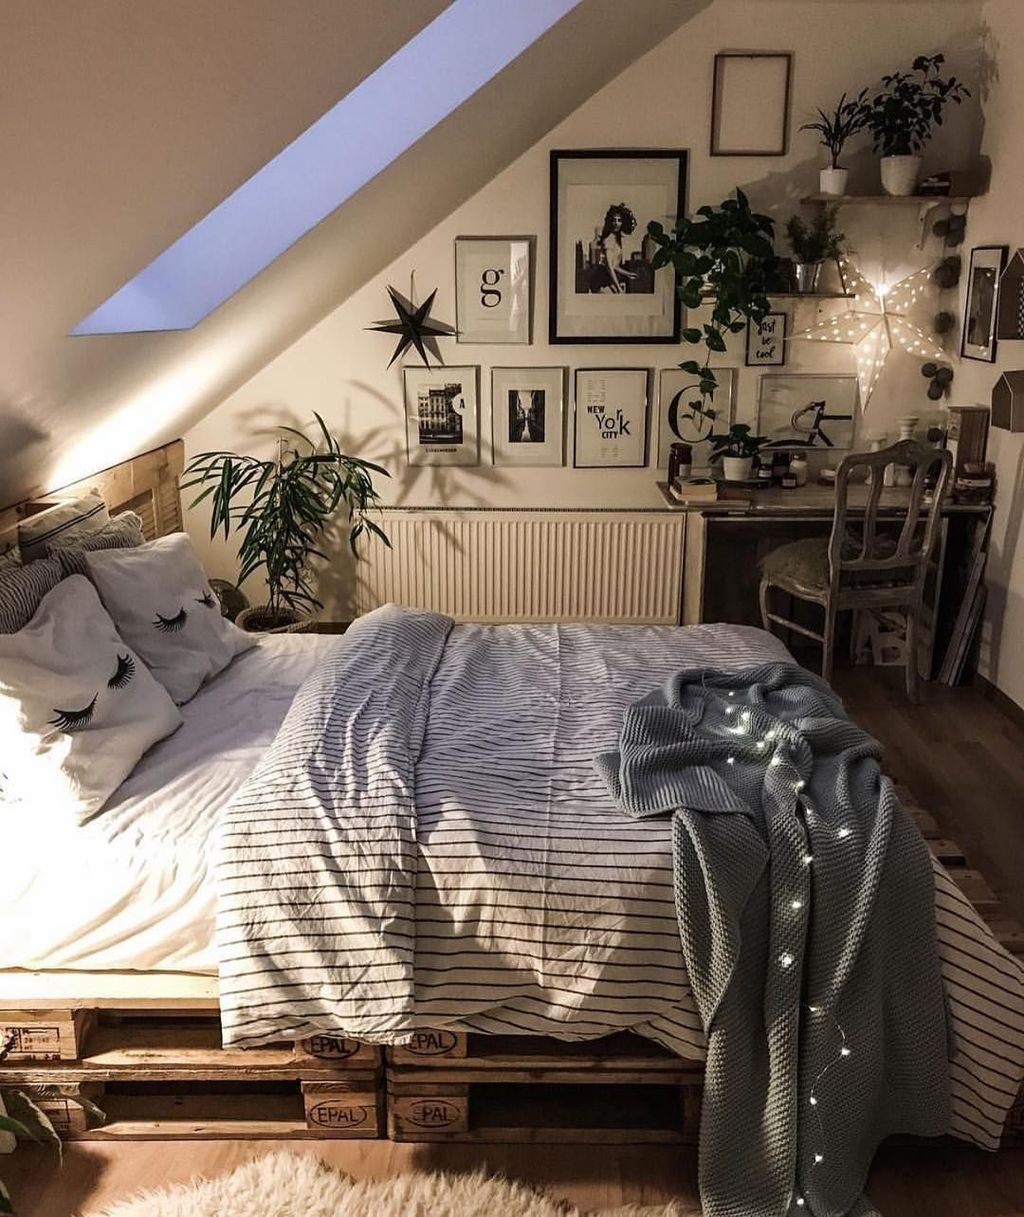 30+ Unusual Attic Room Design Ideas - TRENDEDECOR #roominspo